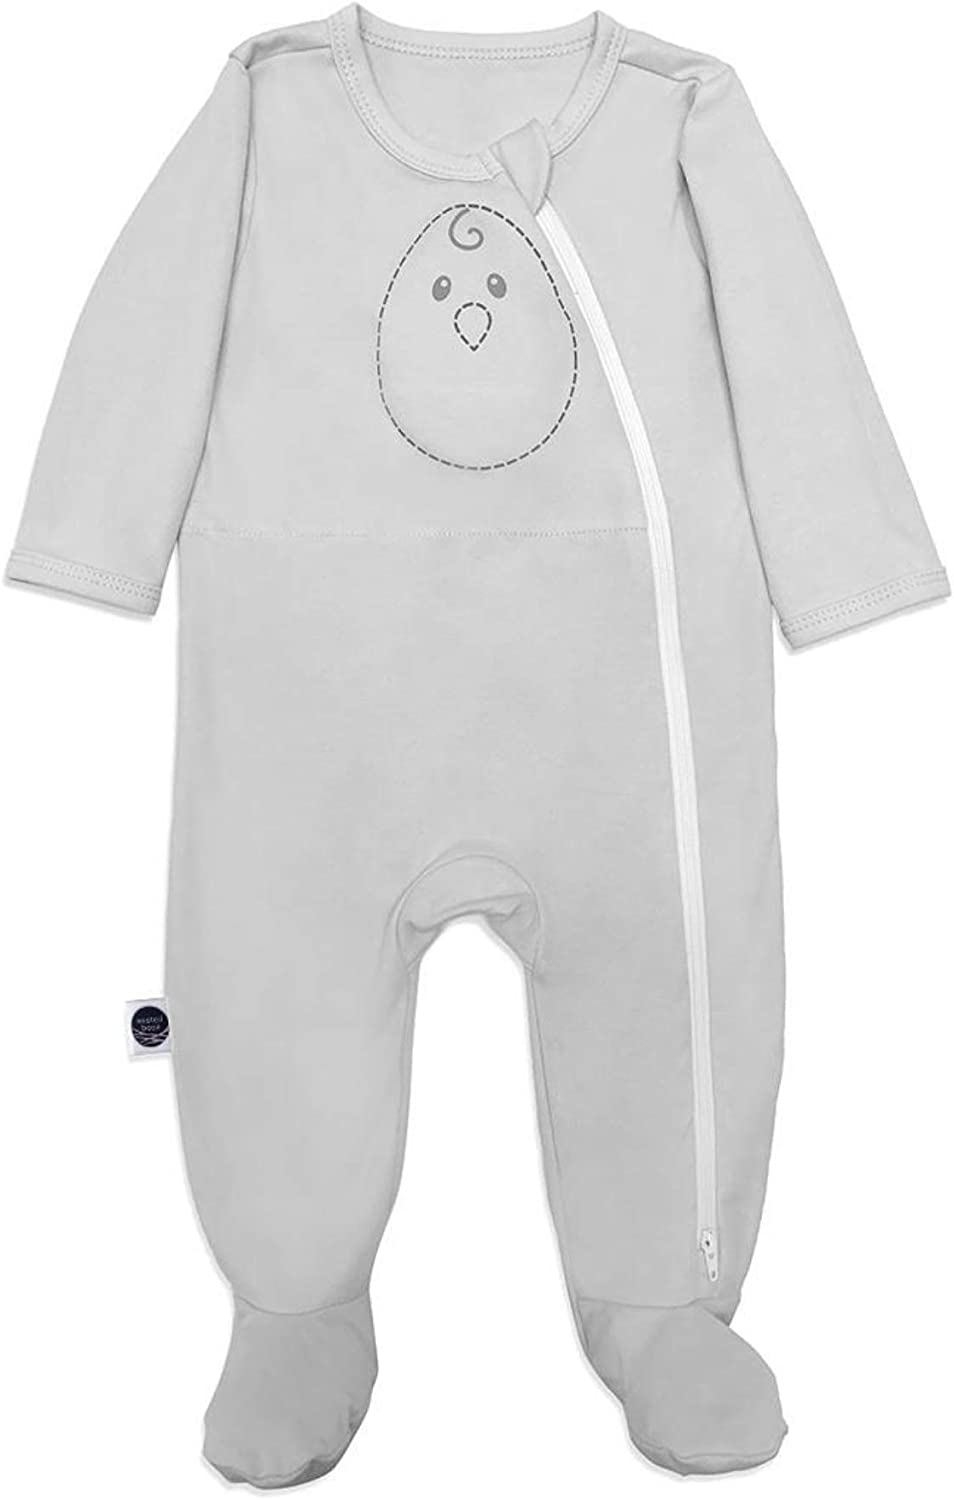 100/% Cotton Long Sleeved Gently Weighted Nested Bean Zen Footie Pajama Classic